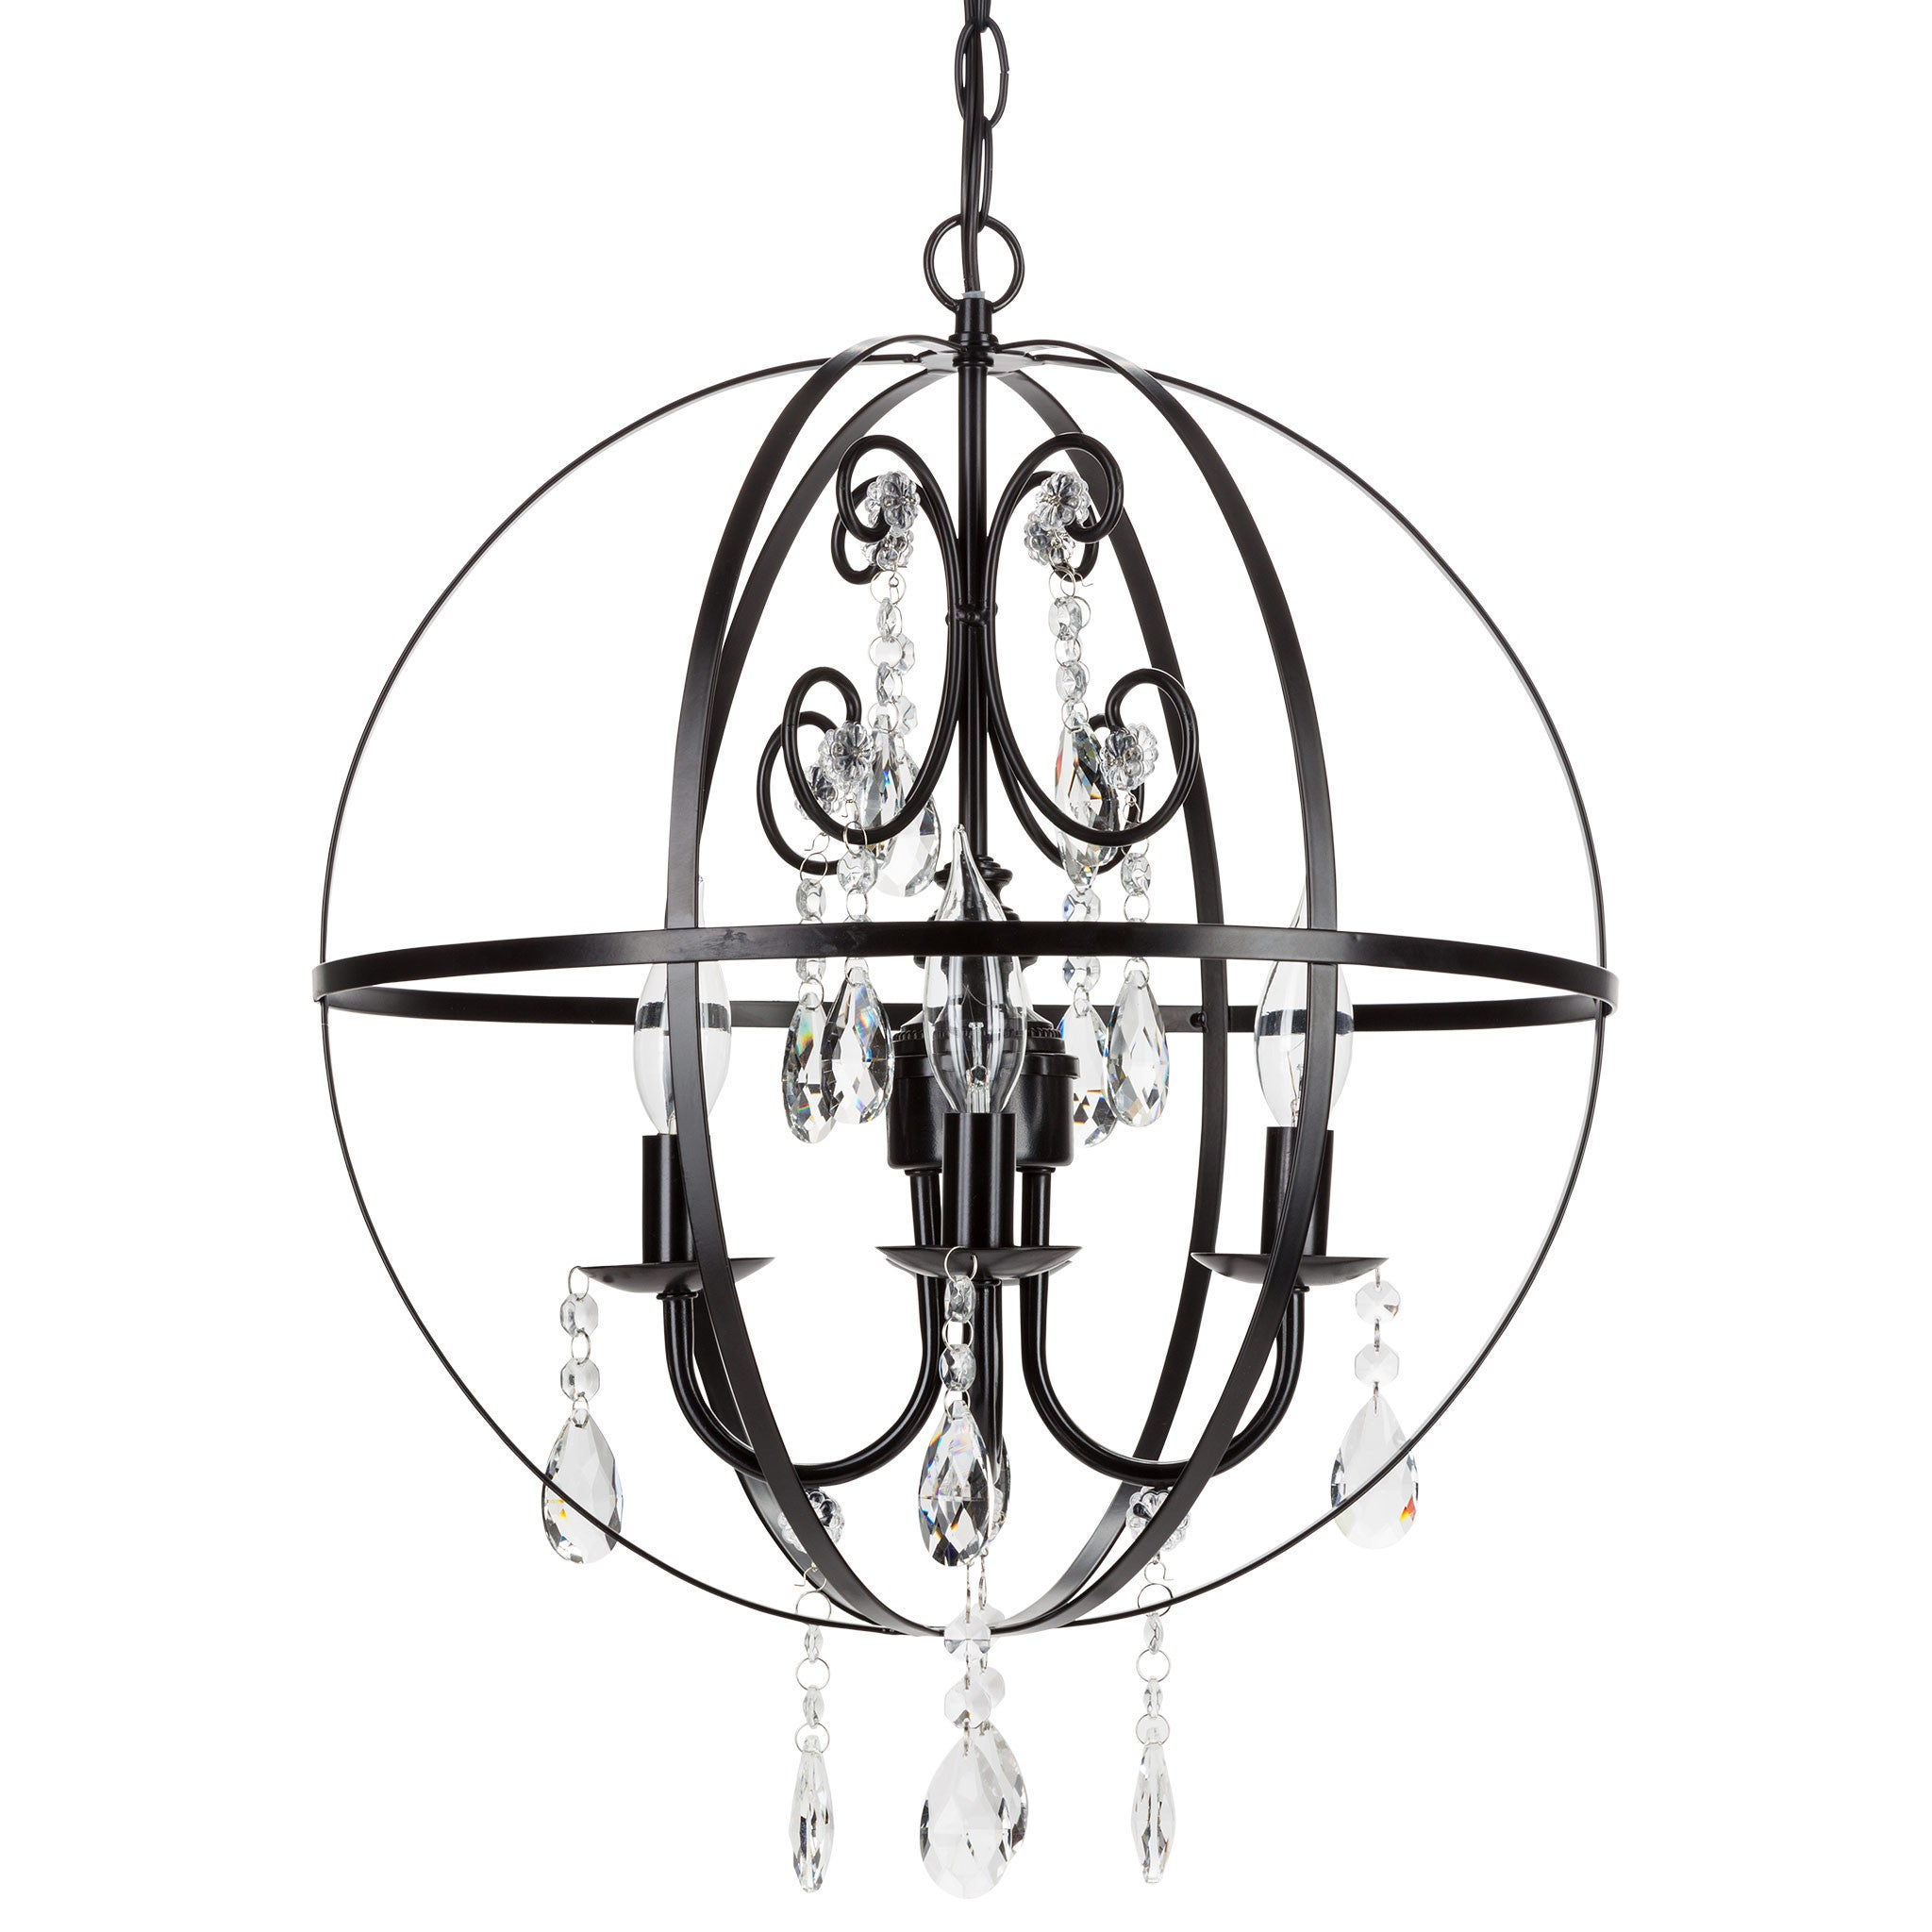 Amalfi Decor 4 Light Contemporary Crystal Orb Plug-In Chandelier (Black) | Wrought Iron Frame with Glass Crystals